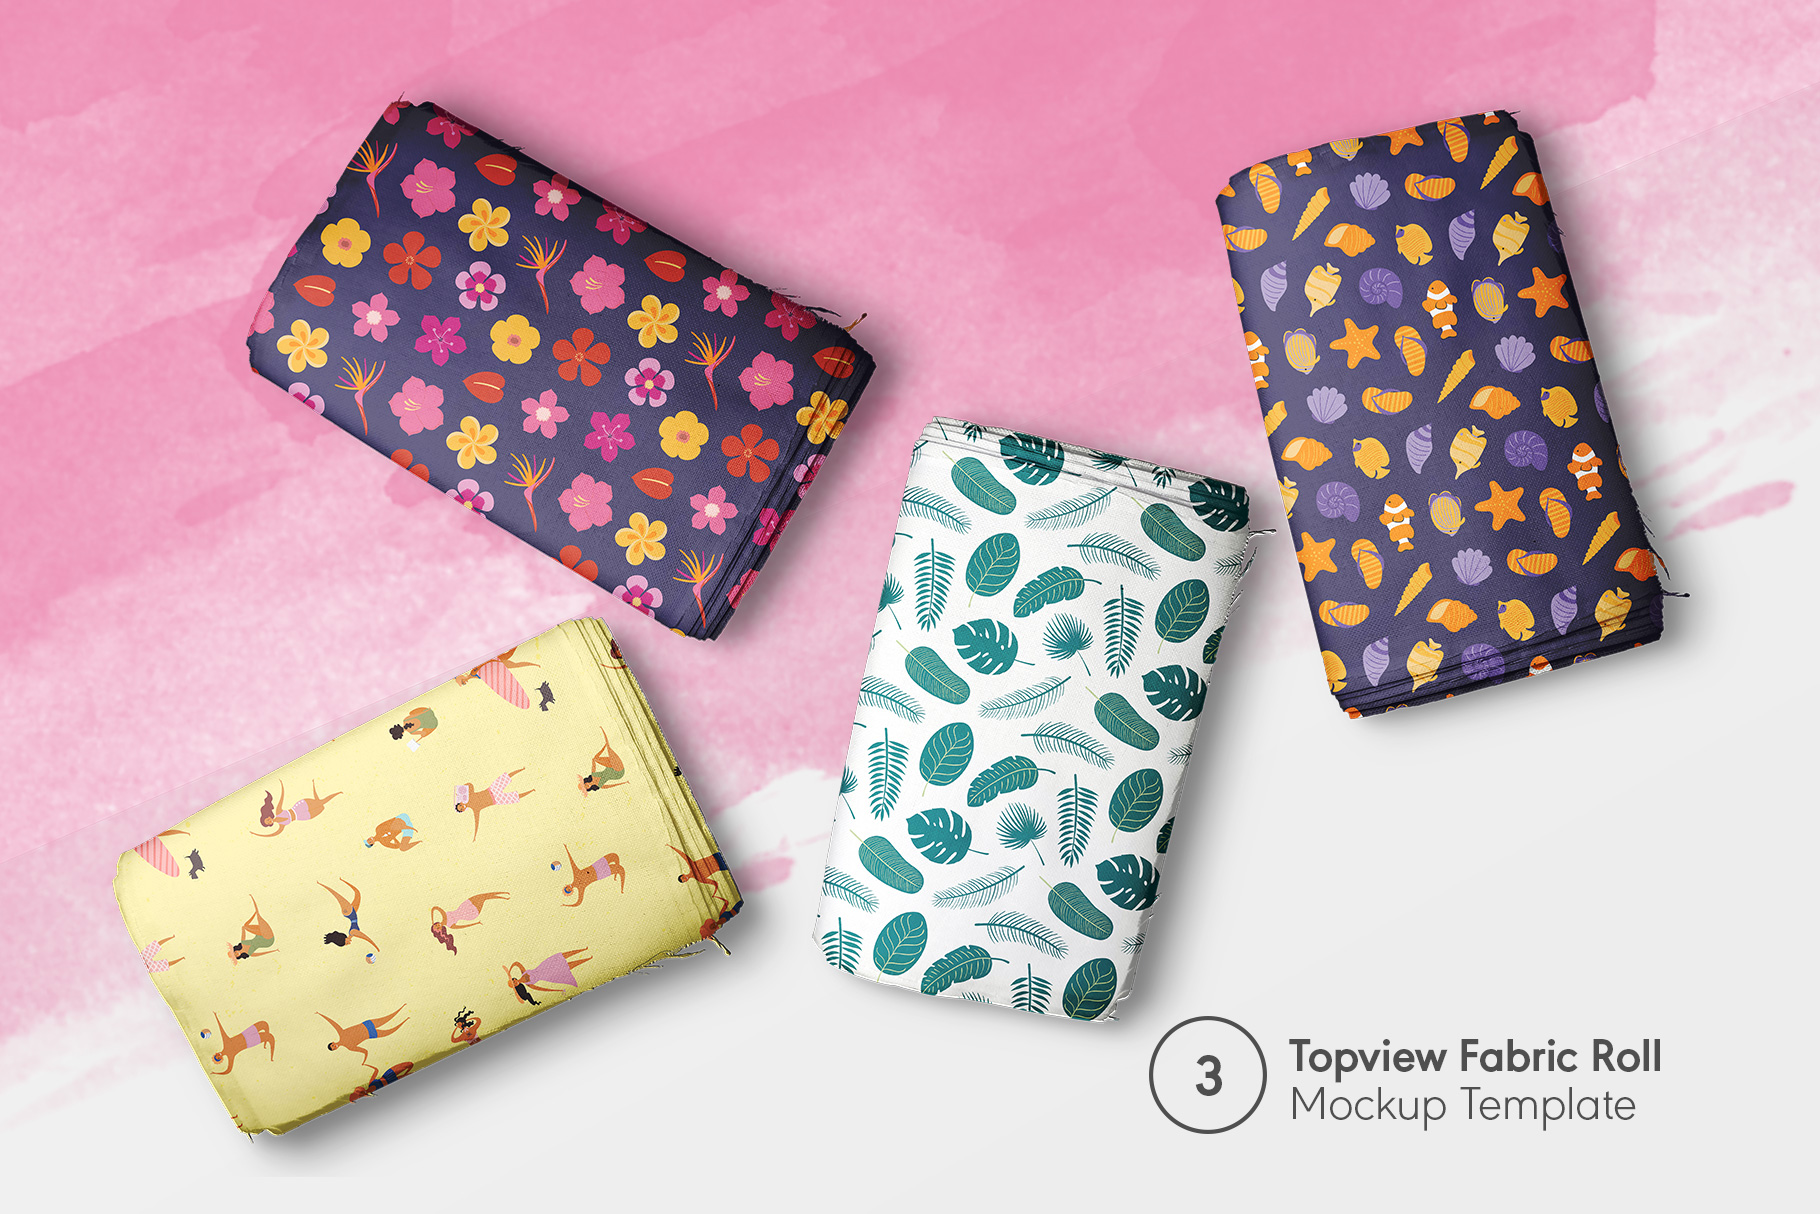 preview 3 of the top view fabric rolls mockup set